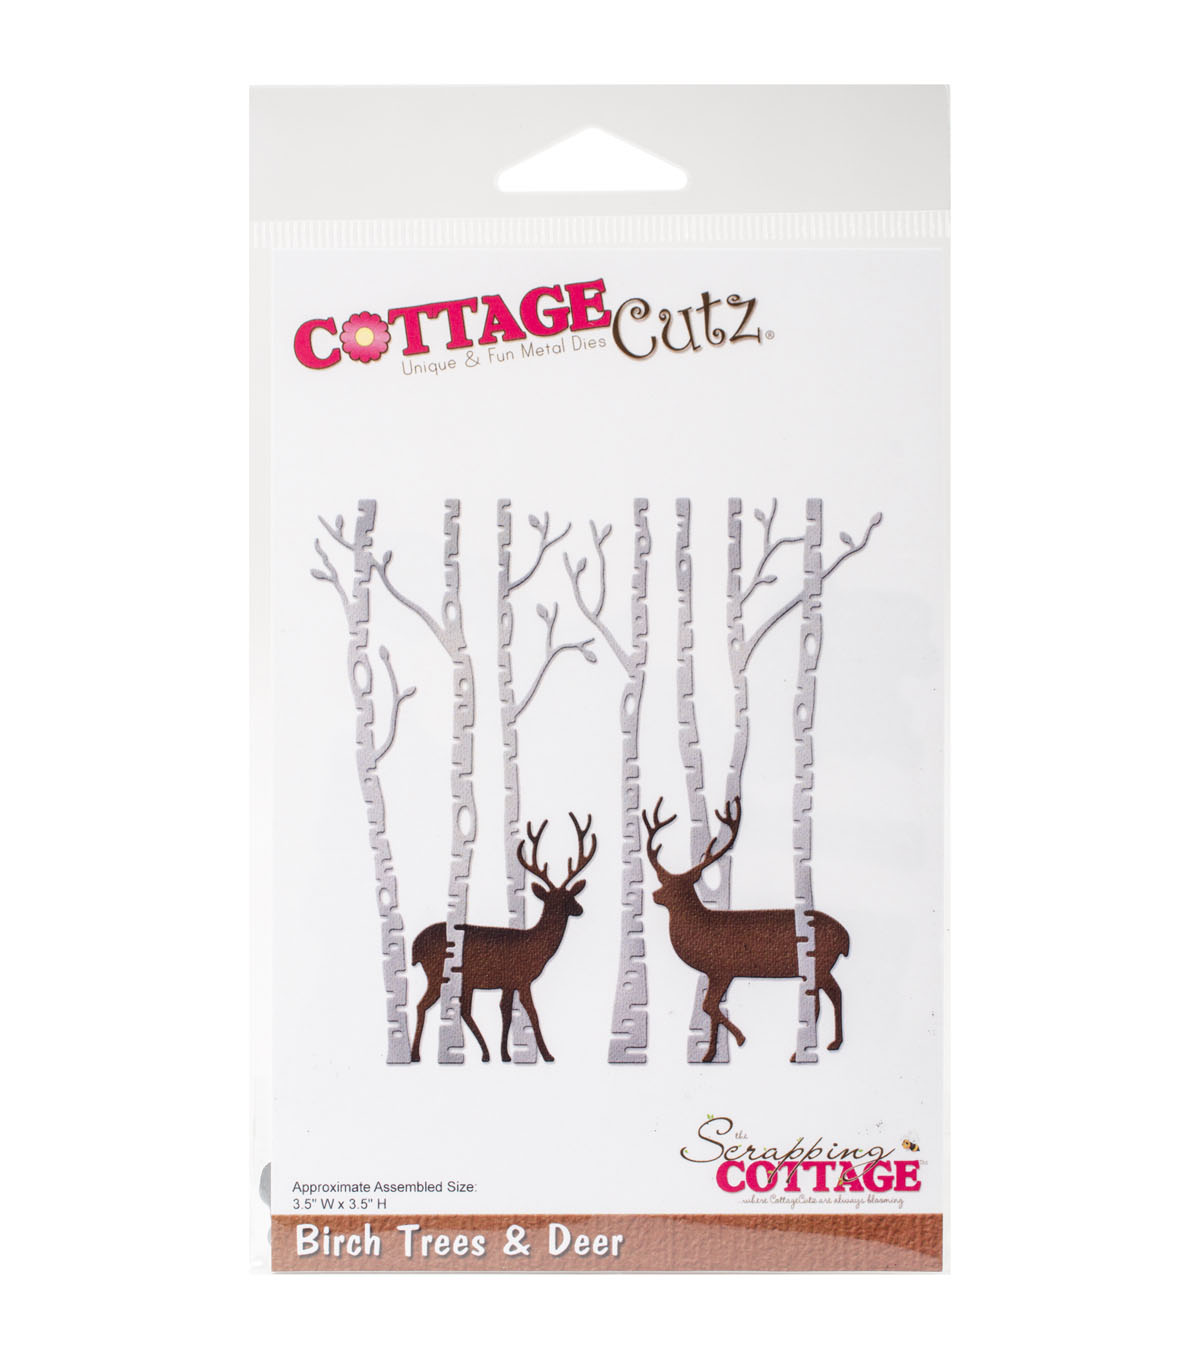 The Scrapping Cottage CottageCutz 3.5\u0027\u0027x3.5\u0027\u0027 Dies-Birch Trees & Deer